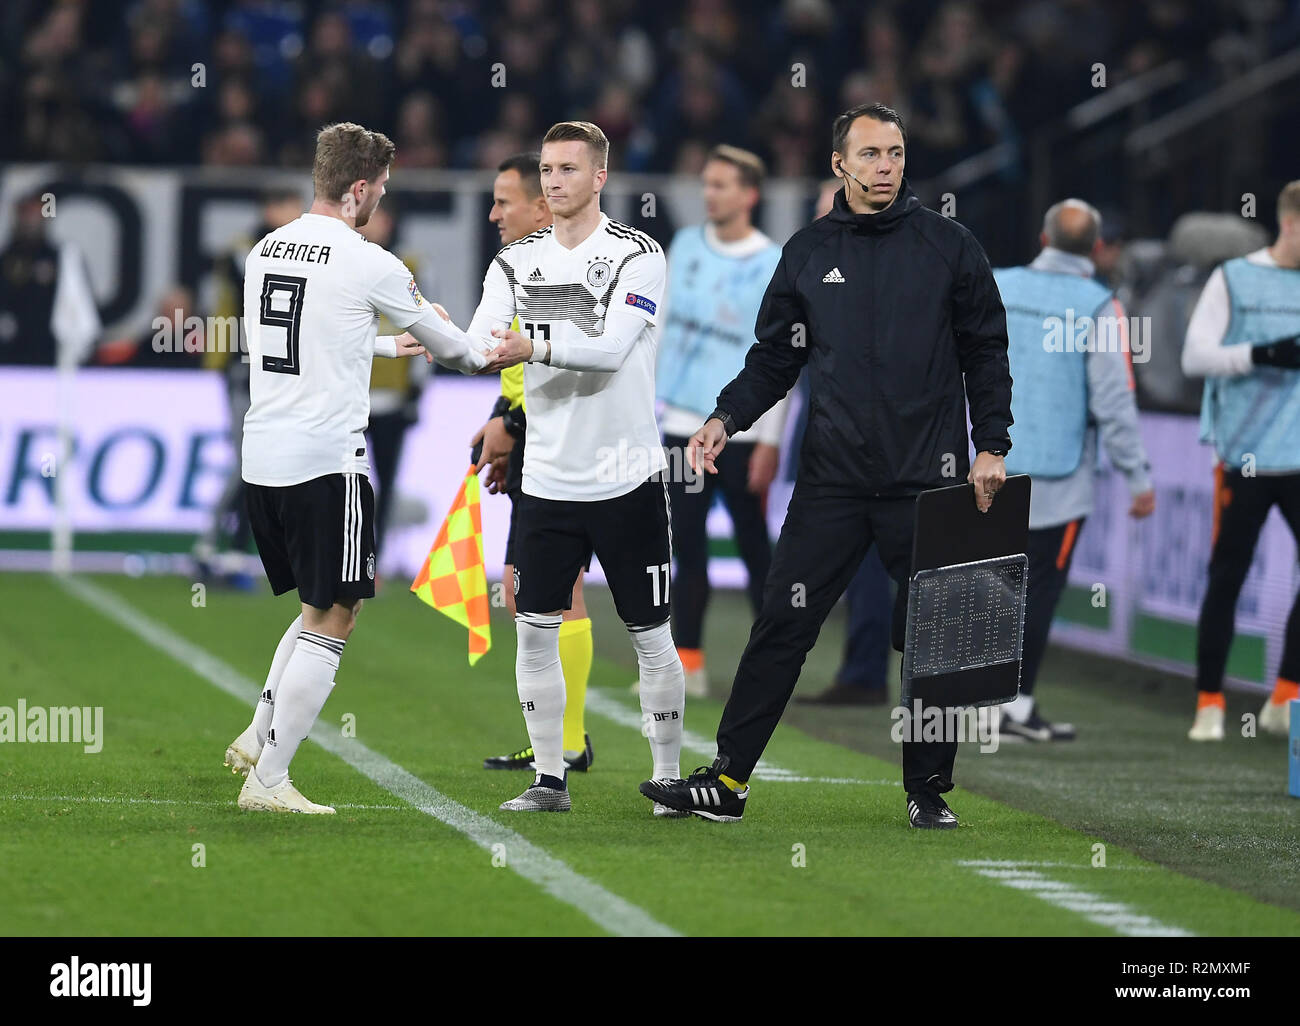 Gelsenkirchen, Deutschland. 19th Nov, 2018. Substitutions: Timo Werner (Germany) walks, Marco Reus (Germany) is coming. GES/Football/Nations League: Germany - Netherlands, 19.11.2018 Football/Soccer: Nations League: Germany vs Netherlands, Gelsenkirchen, November 19, 2018   usage worldwide Credit: dpa/Alamy Live News - Stock Image